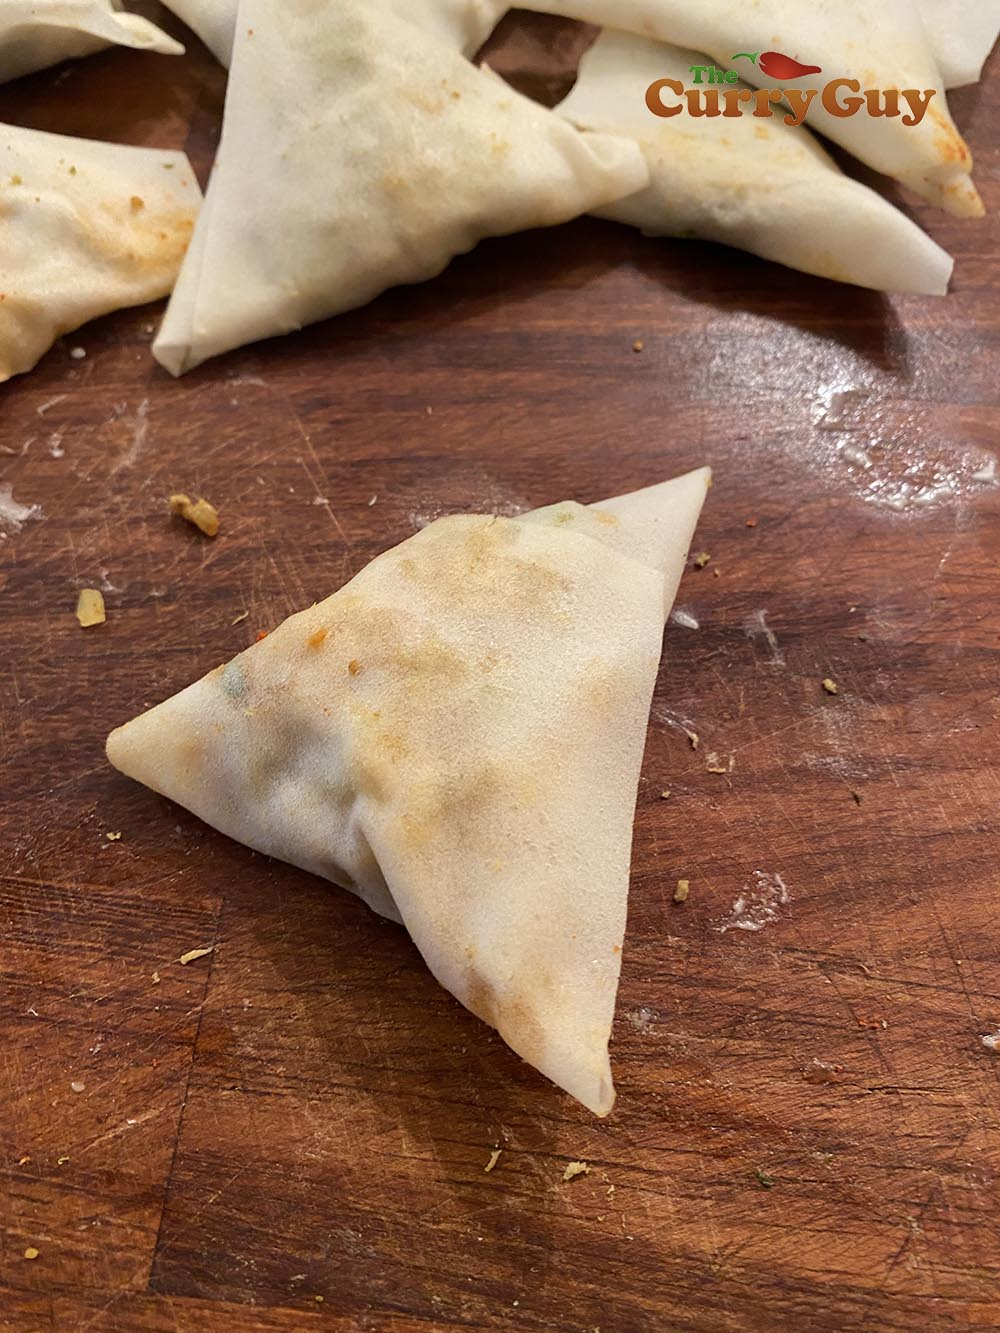 Finished samosa